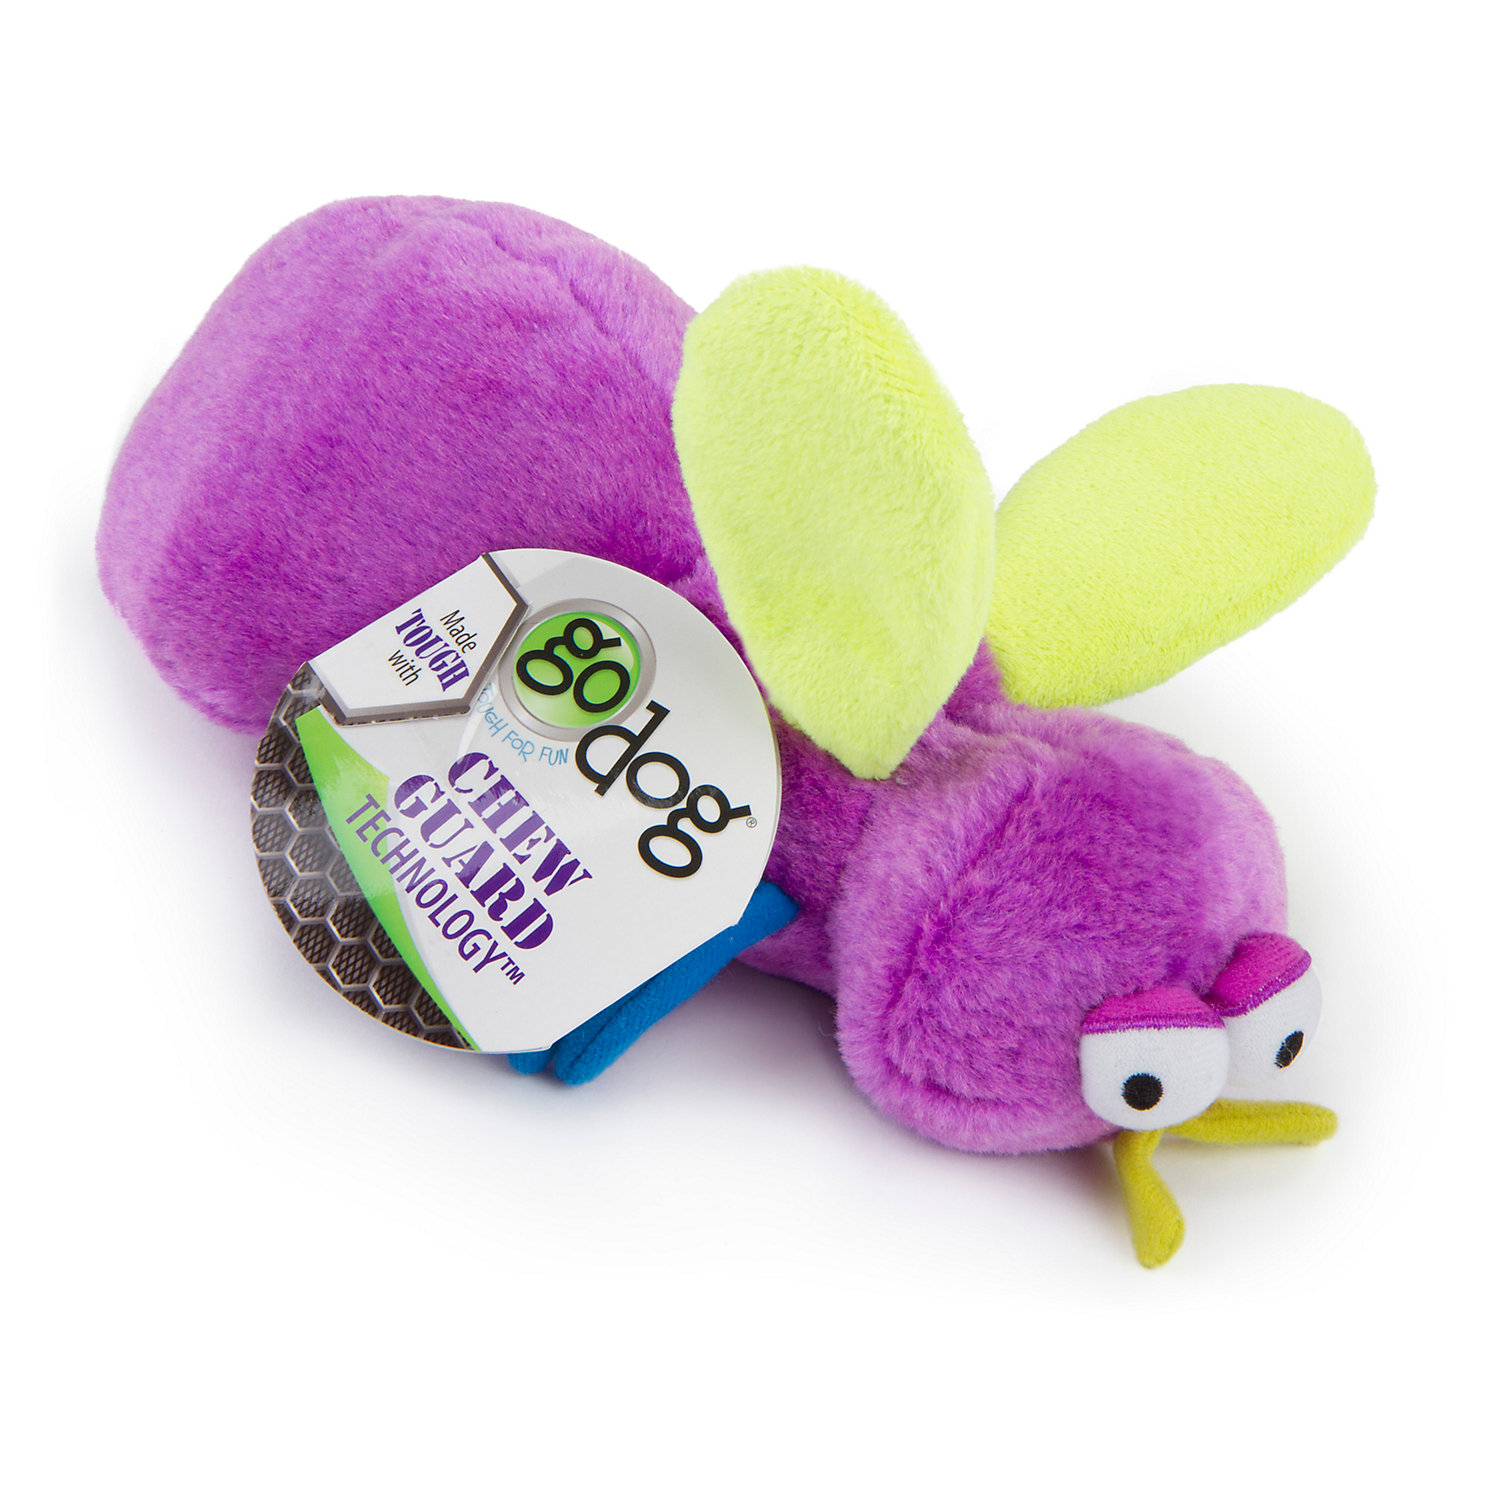 Image of Godog Bugs Fly Purple Large With Chew Guard Purple, Large, Purple / Green